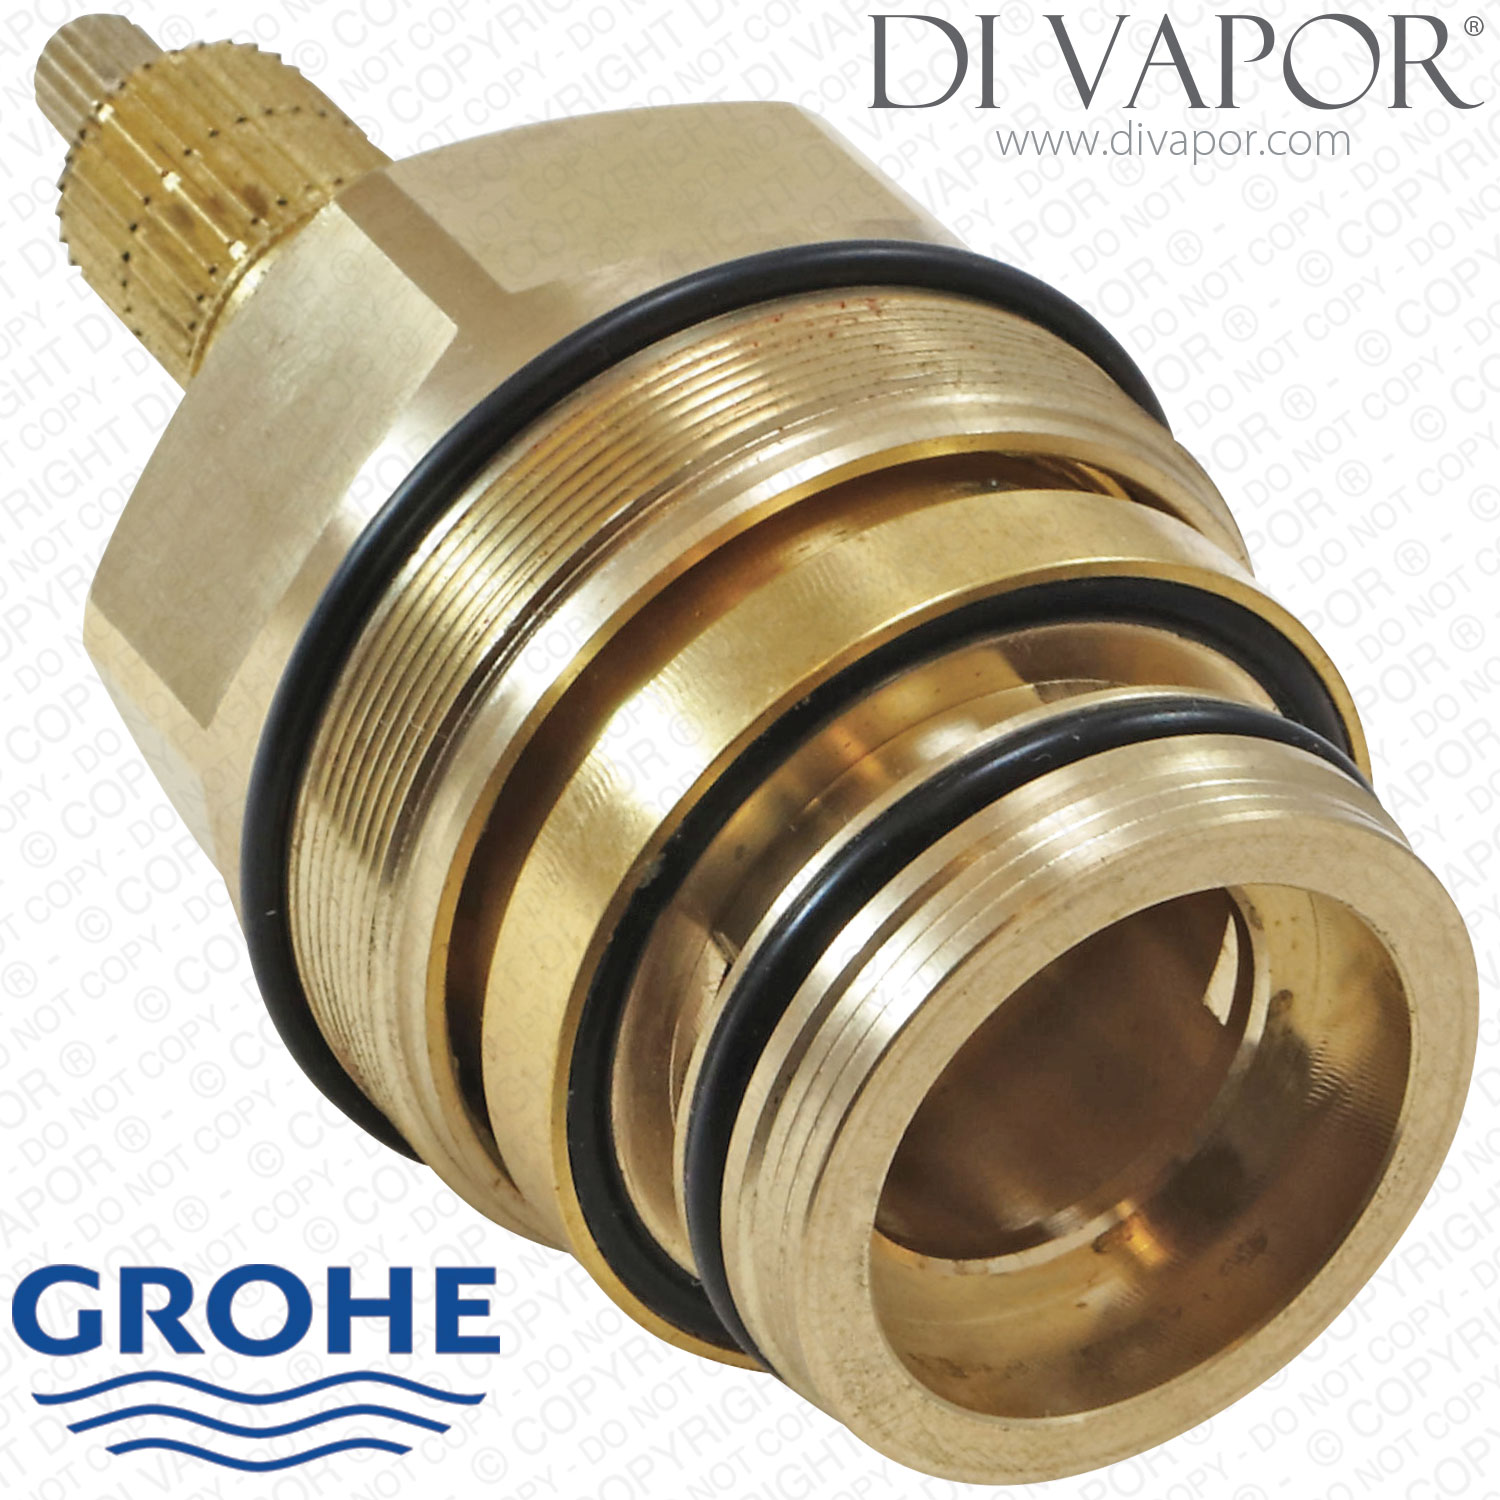 Steam Shower Whirlpool Bath Grohe 47598000 Thermostatic Cartridge With Piston And Wax